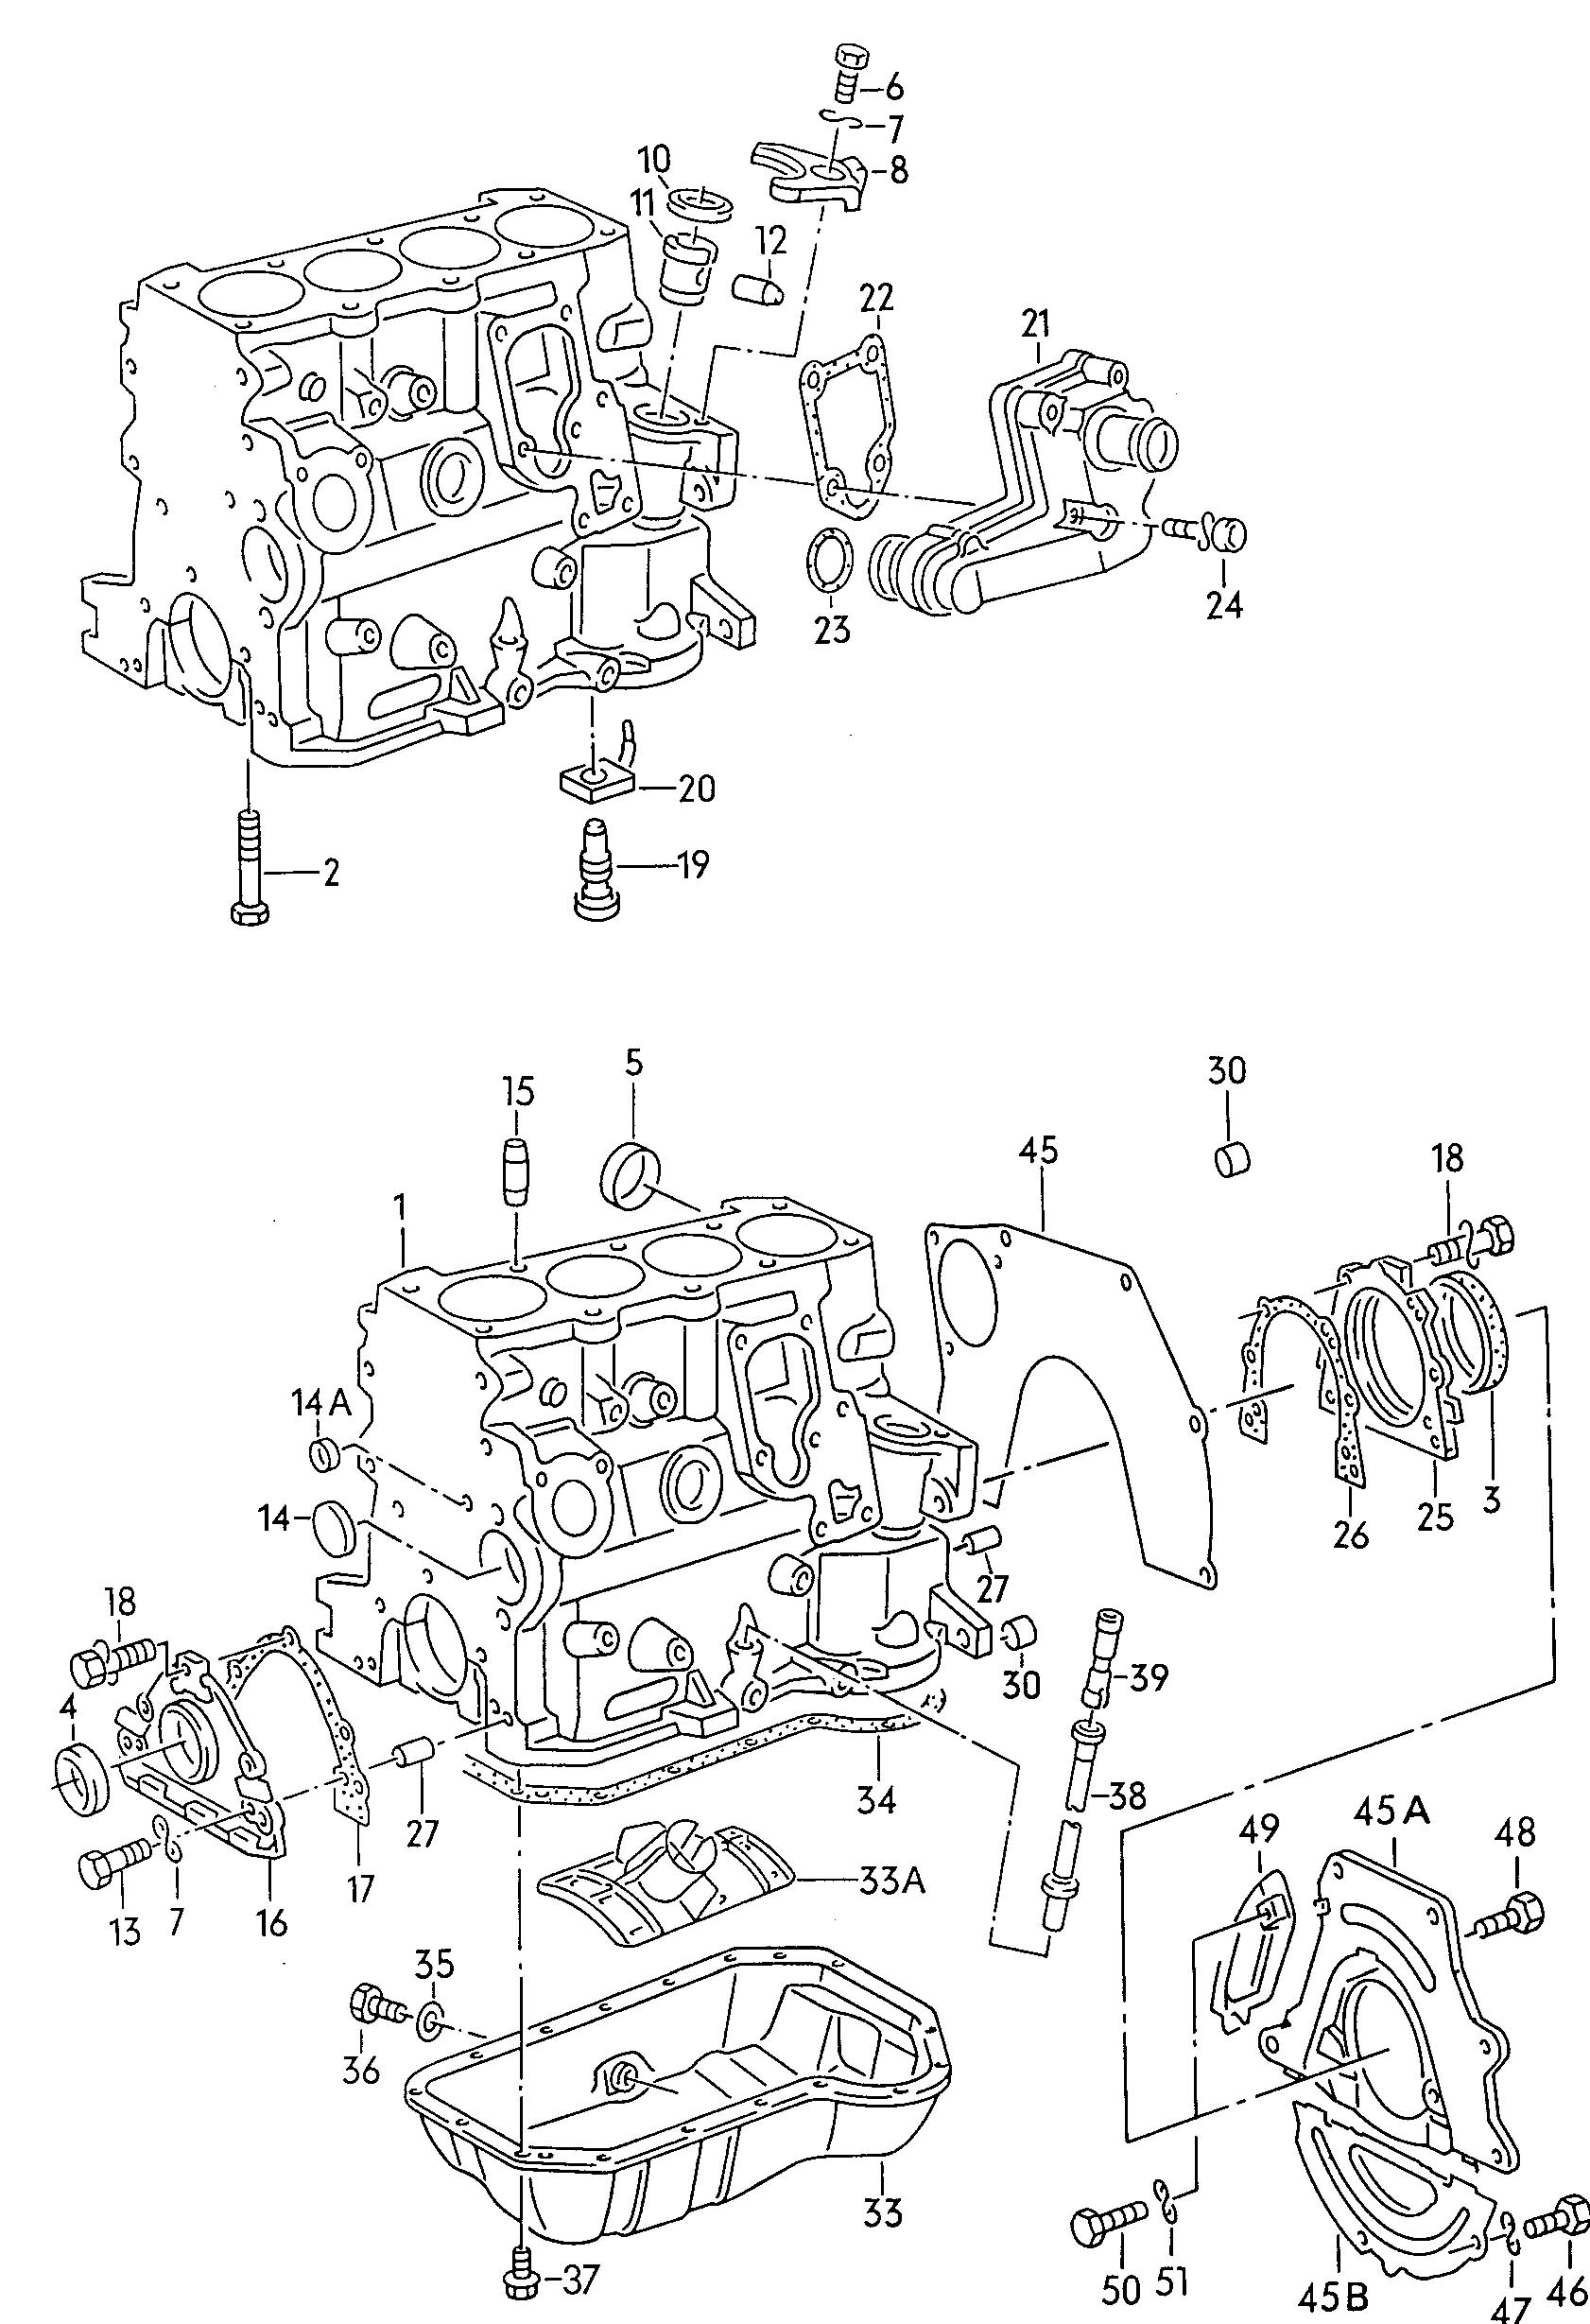 98 Jetta Vr6 Engine Diagram Within Diagram Wiring And